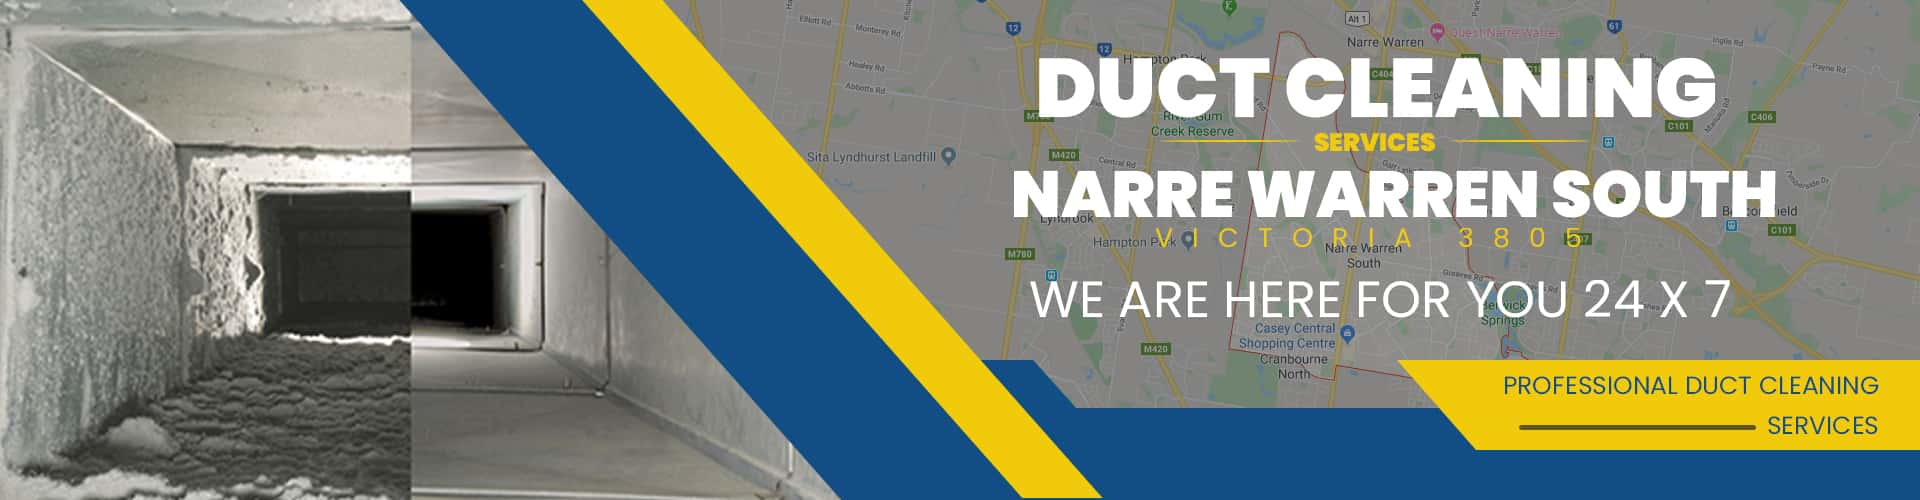 Duct Cleaning Narre Warren South